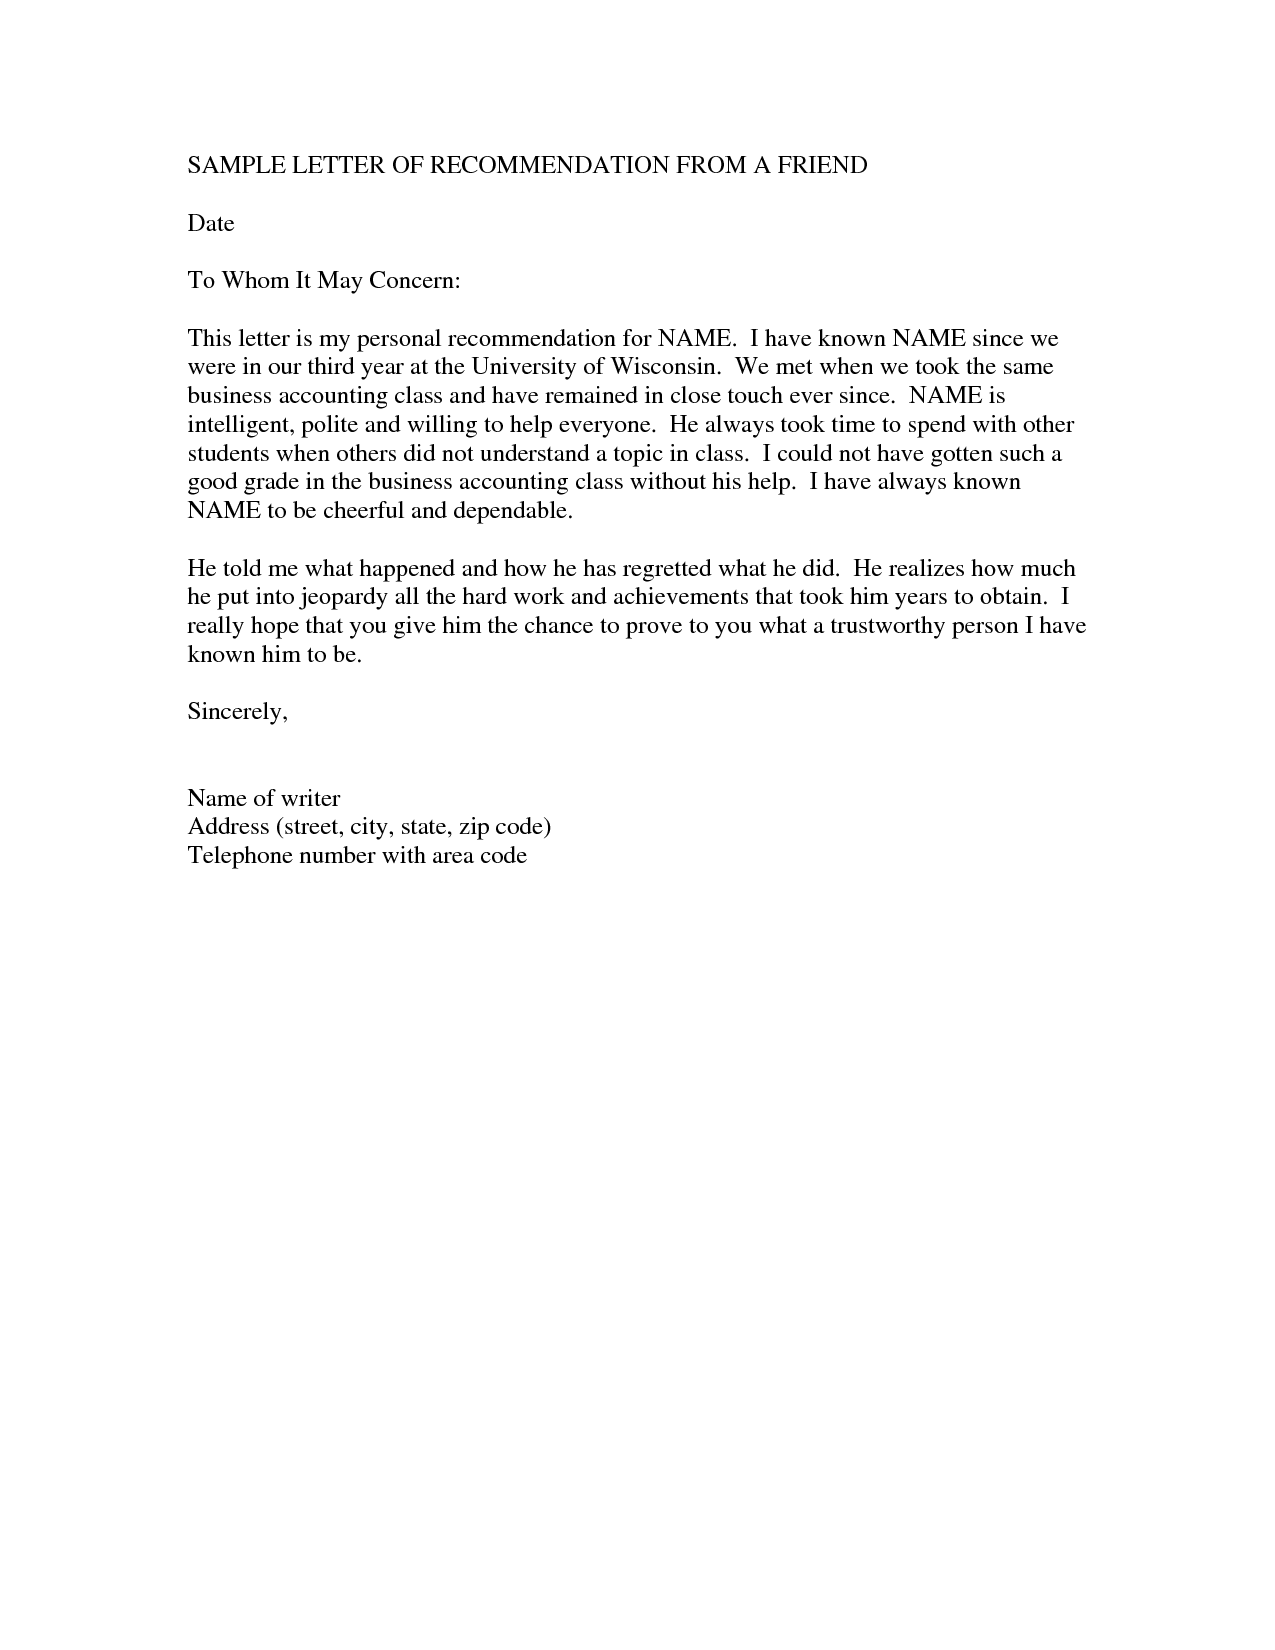 Letter Of Recommendation For Immigration From Friend from www.printablepapertemplates.com